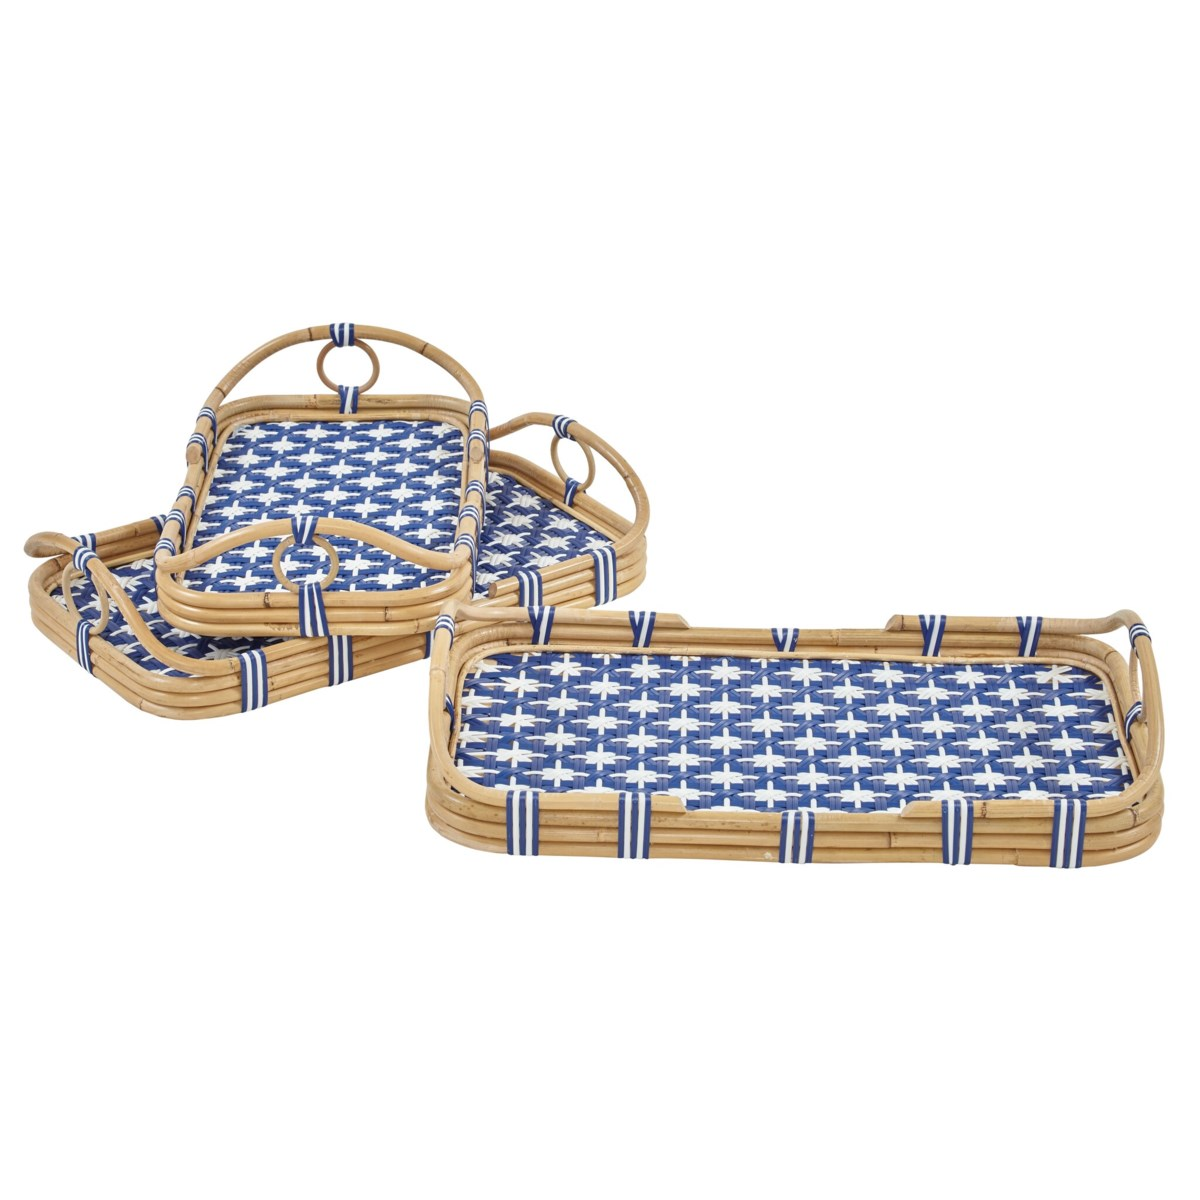 Madrid 3pc Nested Tray Set Color - Navy/White (Star Pattern)